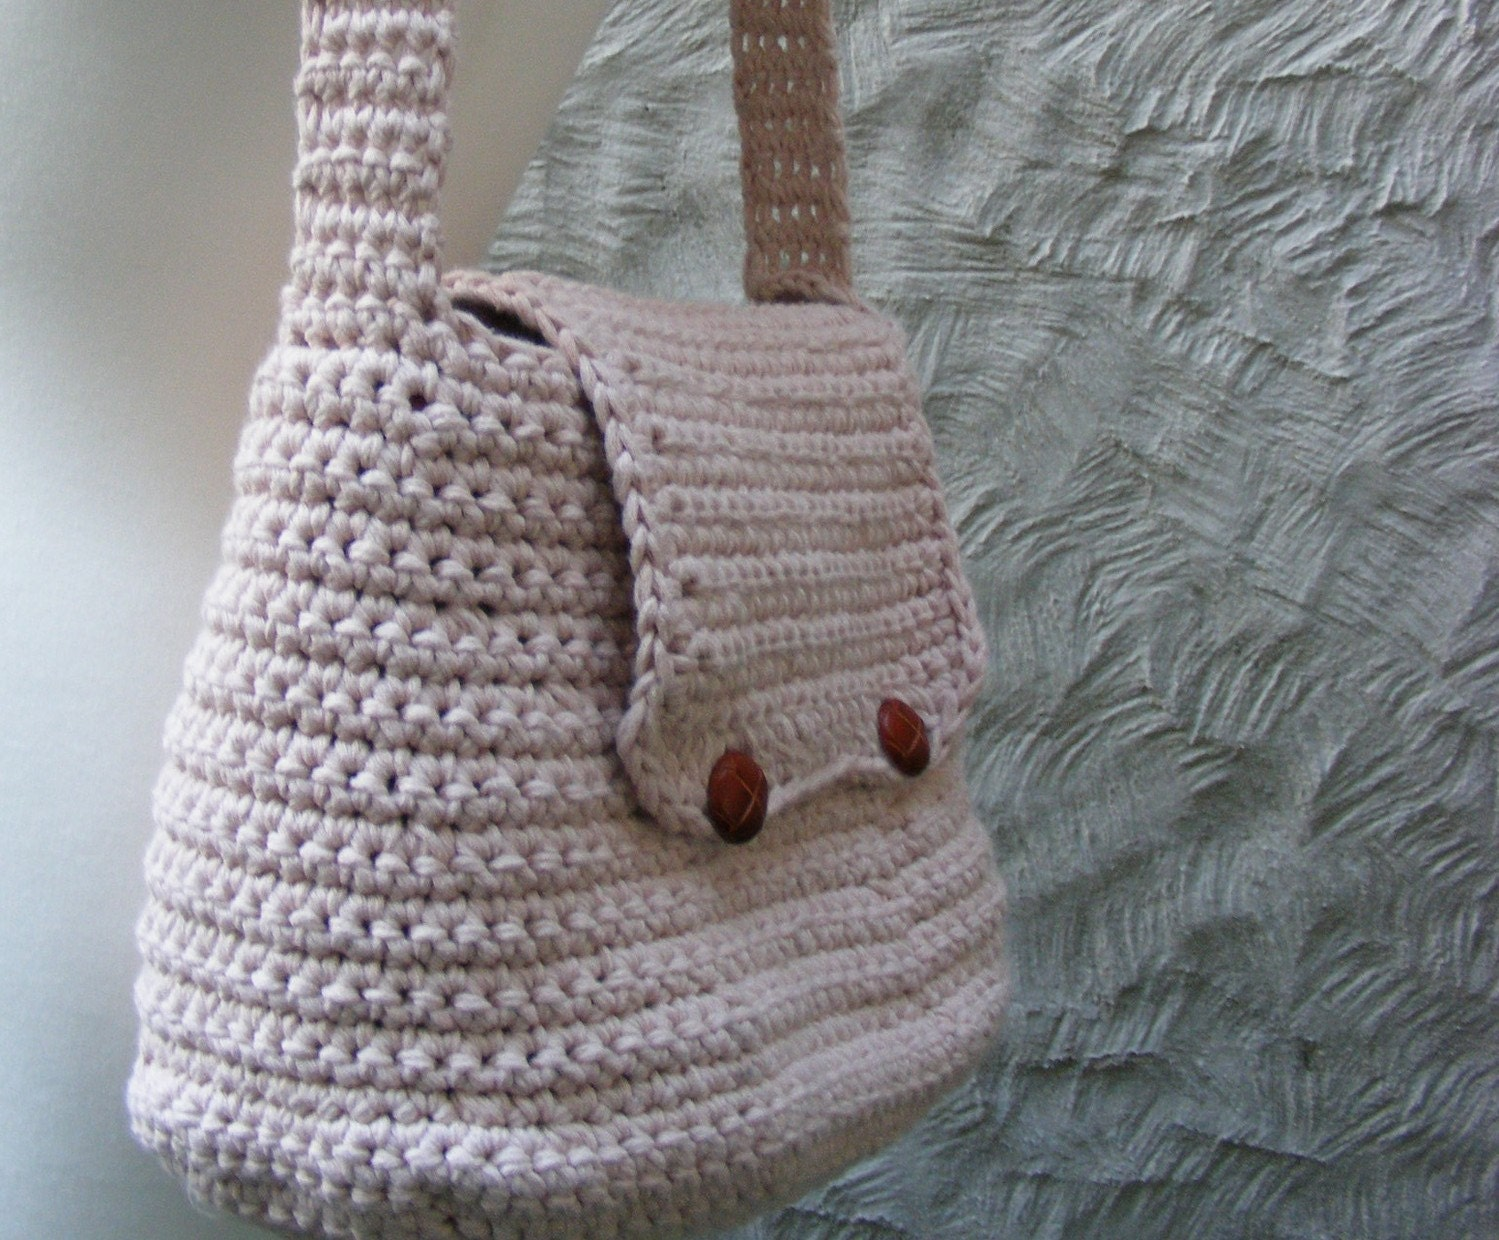 Free Crochet Purse Patterns For Beginners : Crochet Patterns For Beginners Bag Patterns Crochet Hobo Bag